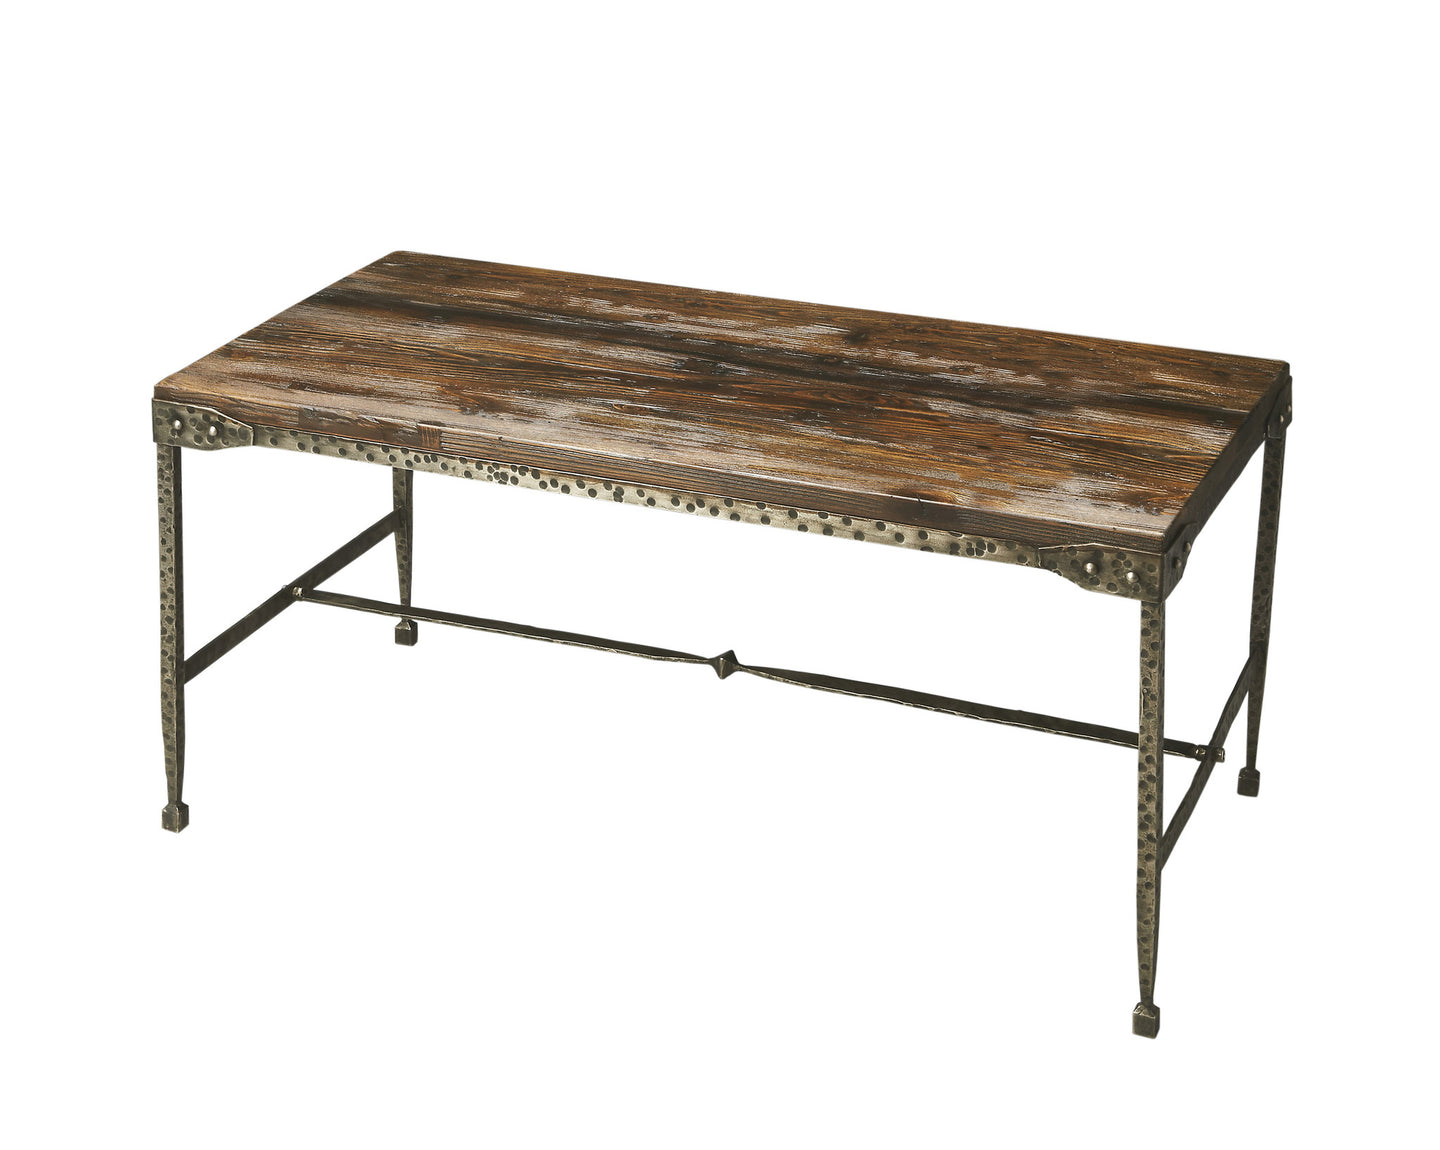 Butler Weathered Wood and Iron Cocktail Table by Butler Specialty Company 2884120